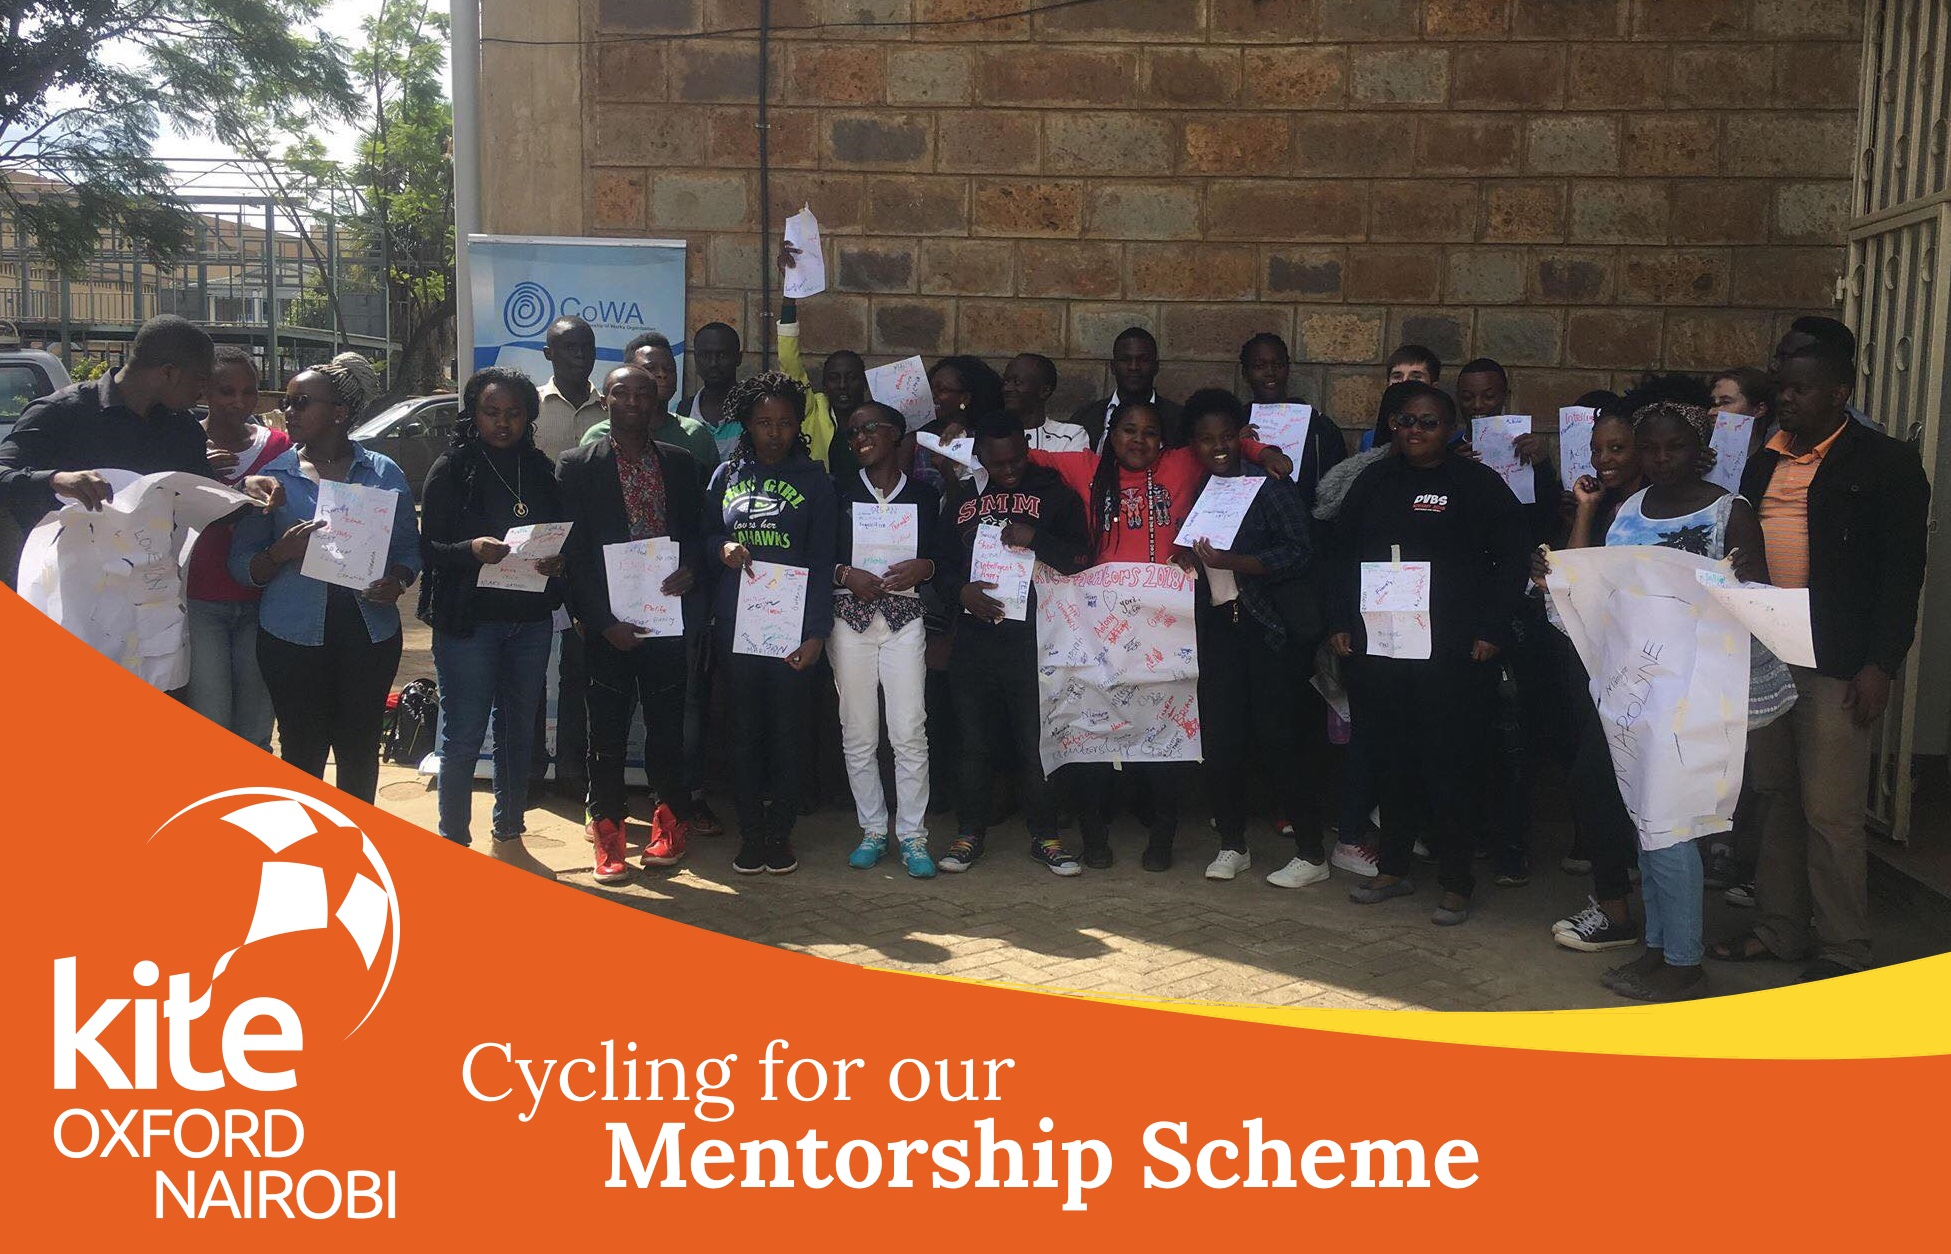 We are very excited to launch our fundraising challenge to raise money for the Oxford-Nairobi mentorship scheme - Cycle to Nairobi! Between the committee we will be cycling or walking the distance from Oxford to Nairobi in 5 weeks! We start on 18th February and by 31st March we will have travelled 4,284.40 miles collectively with each committee member cycling, running or hiking part of the distance. Bridging the distance between Oxford and Nairobi we are celebrating and raising money for the launch of our first collaborative pilot project!  Our new mentorship scheme is a joint project by Kite Oxford and Kite Nairobi which was launched in January. It aims to reduce the rate of dropouts in high schools, develop pupils' entrepreneurial skills, and bring awareness of vocational training opportunities to students from disadvantaged backgrounds in Kenya. The scheme will utilise university student mentors who have been trained to act as enthusiastic and able role models for high school age mentees and who will provide them with effective careers and skills development support in one-on-one sessions, group activity sessions as well as special activities. You can find out more about our mentorship scheme on our project page.   Please donate here:  https://www.goldengiving.com/fundraising-team/cycletonairobi